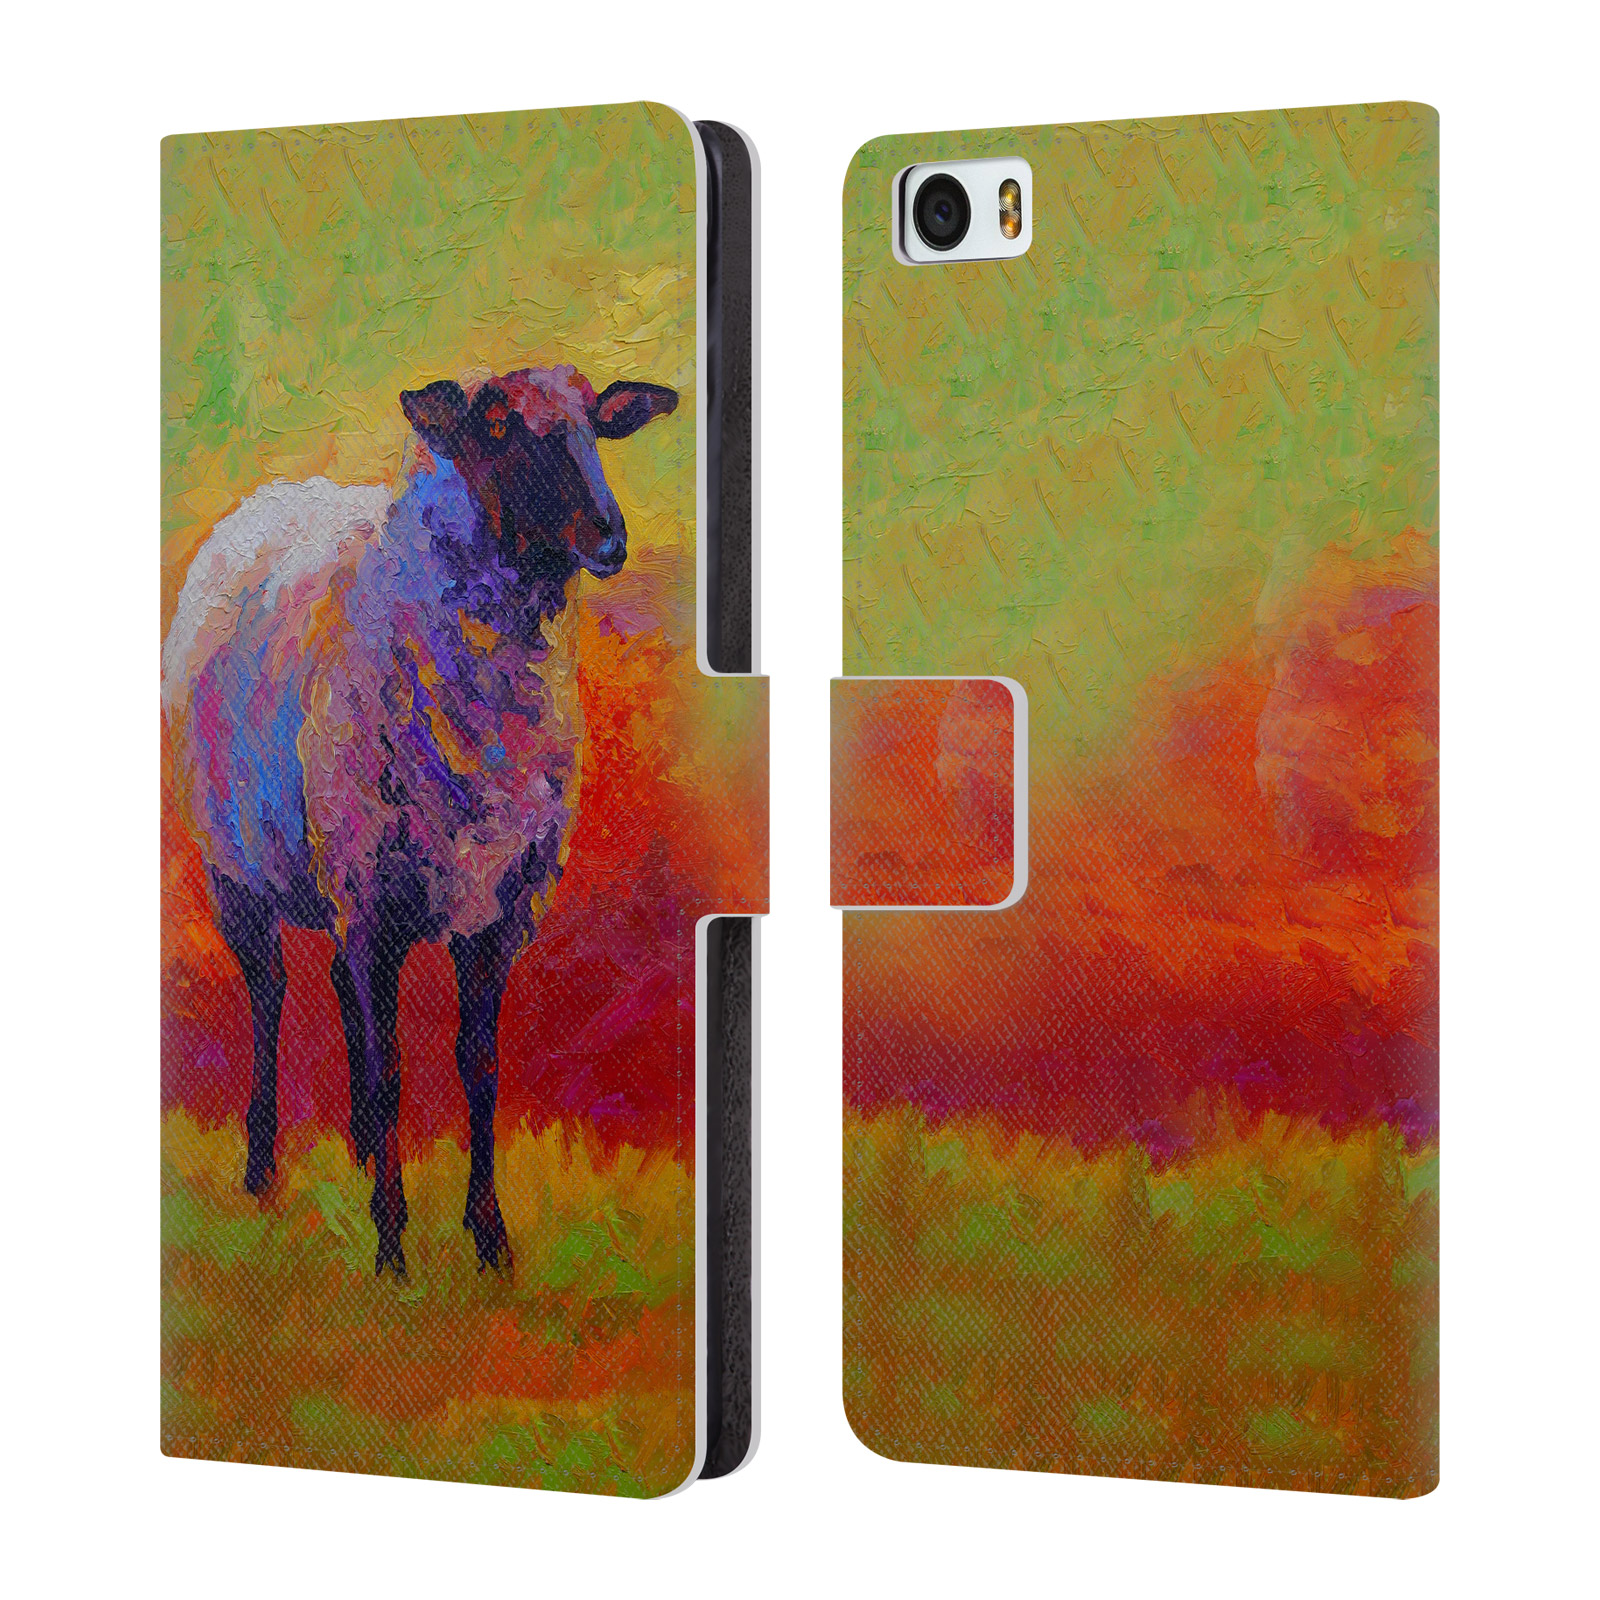 OFFICIAL-MARION-ROSE-SHEEP-LEATHER-BOOK-WALLET-CASE-COVER-FOR-XIAOMI-PHONES